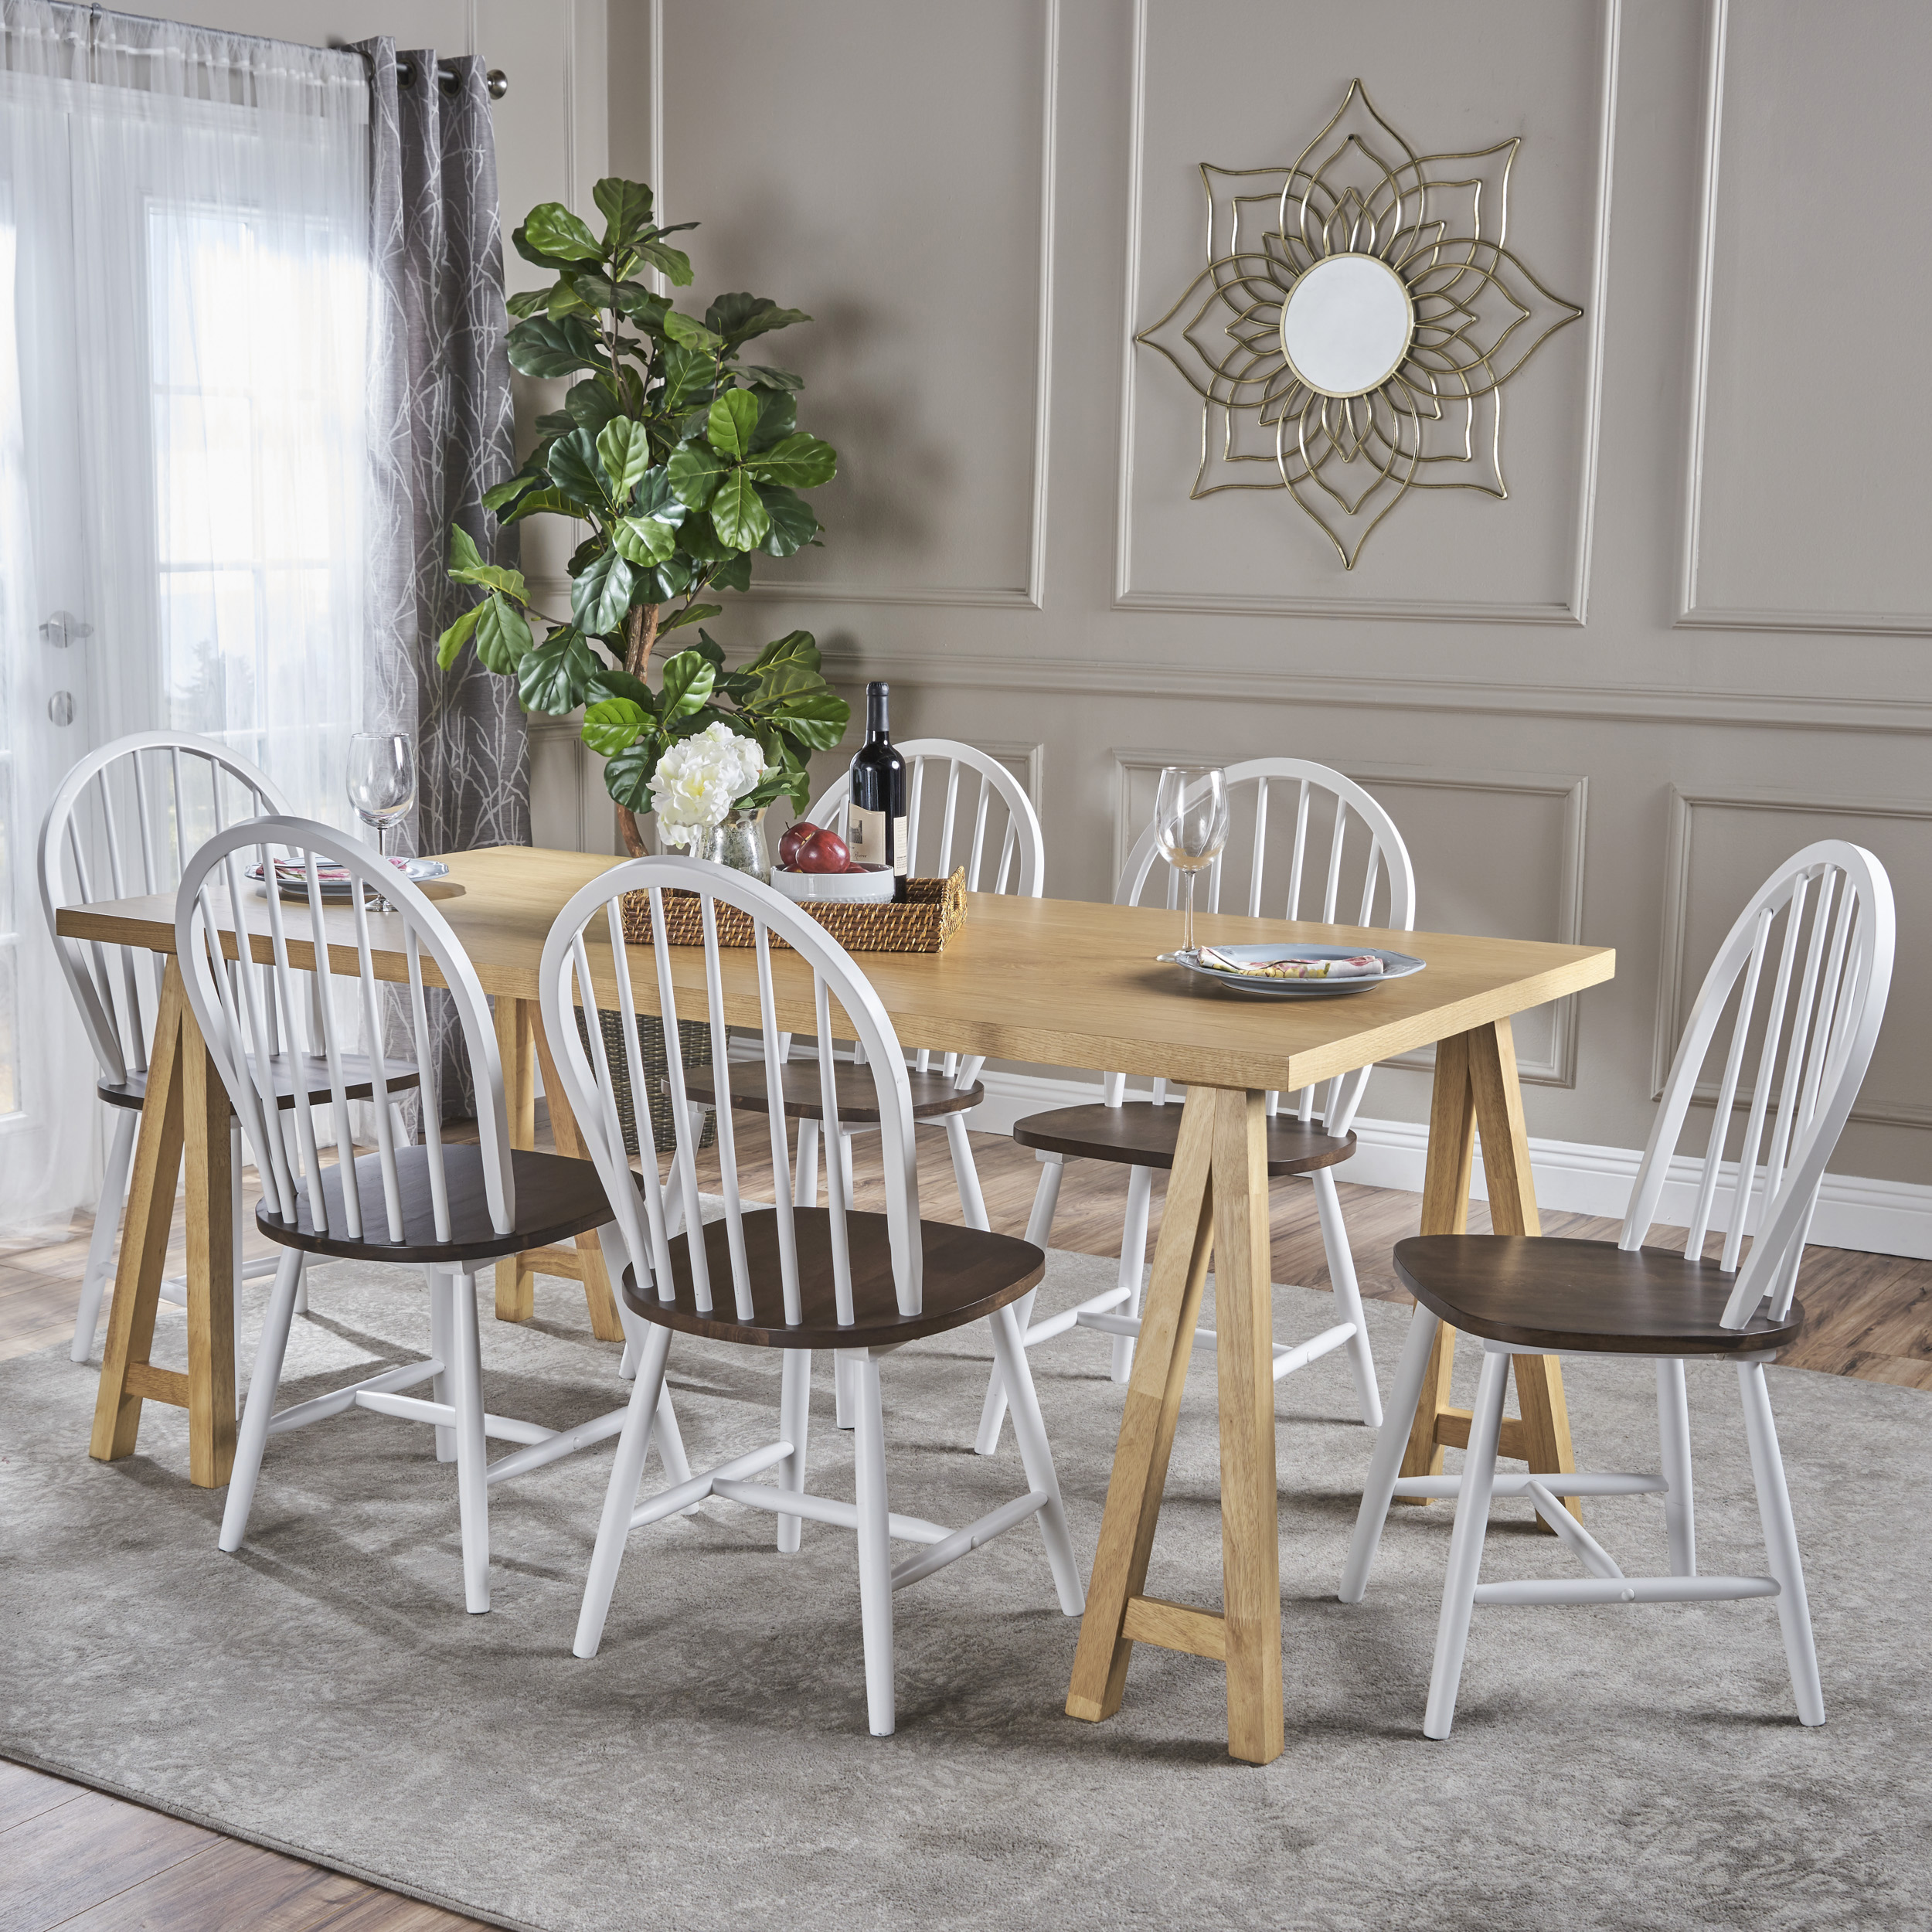 Angela Farmhouse Cottage 7 Piece Faux Wood Dining Set with Rubberwood Chairs, Natural Oak and White